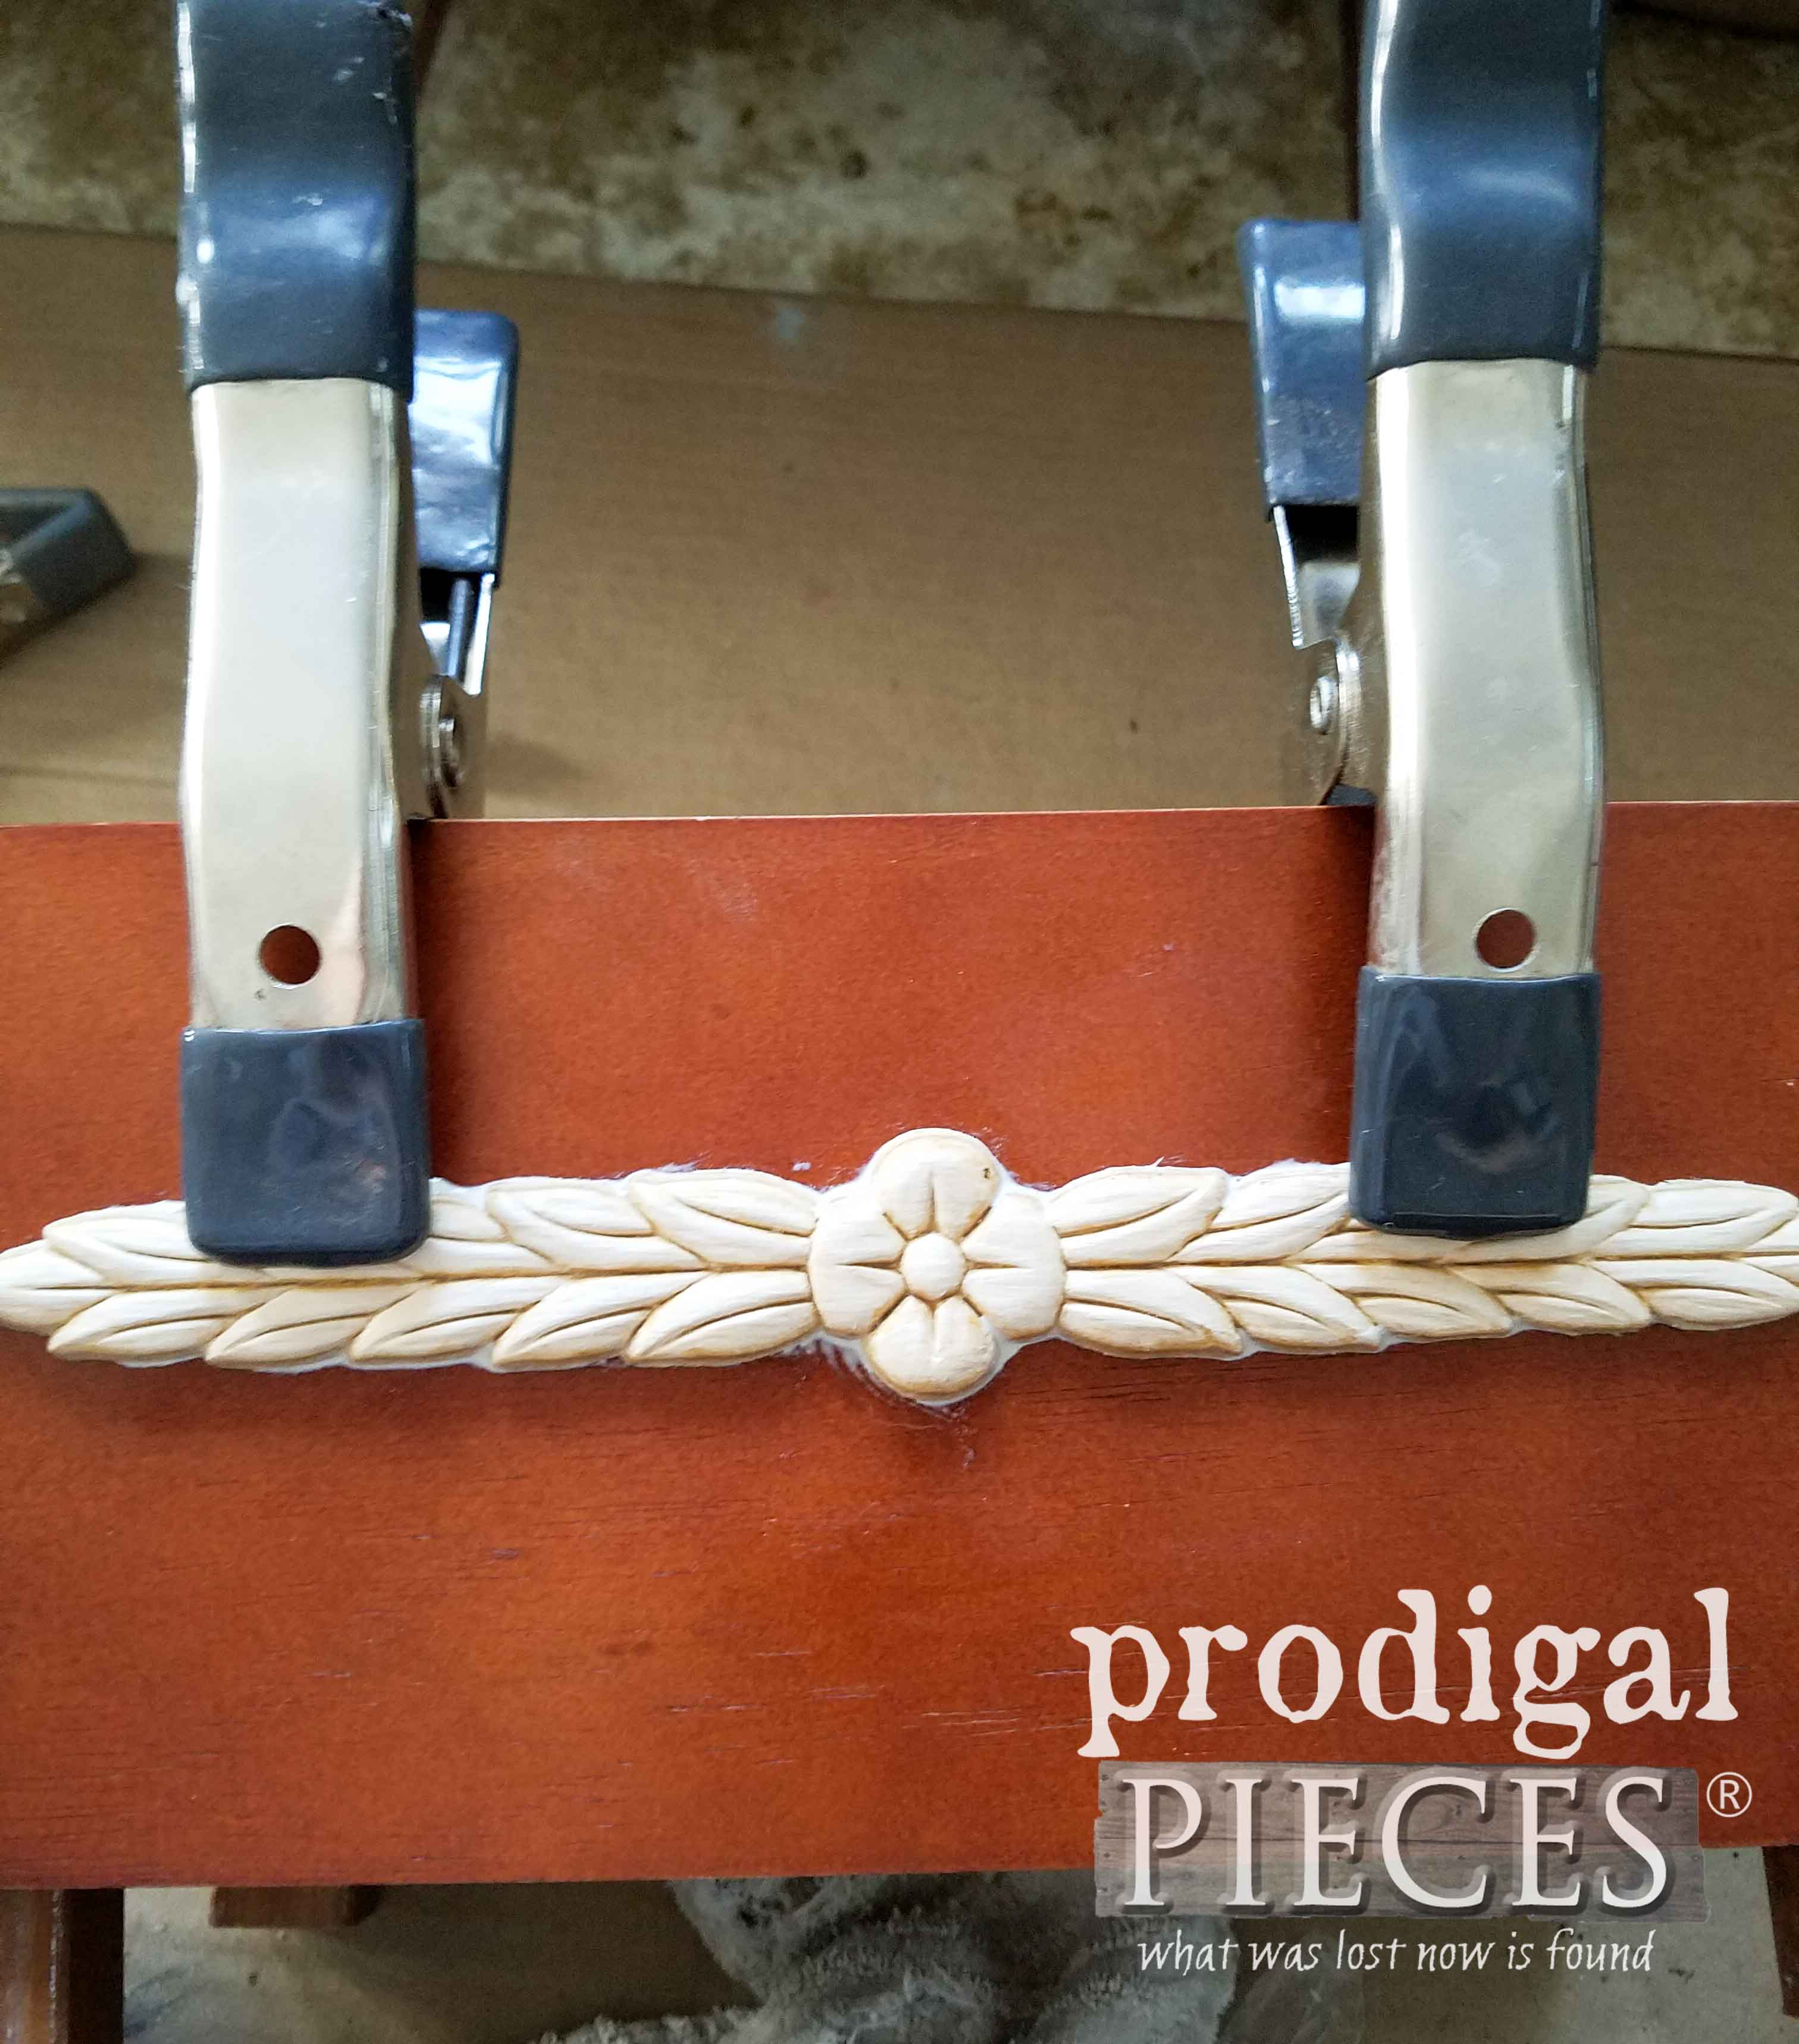 Gluing on Carved Wood Pieces | prodigalpieces.com